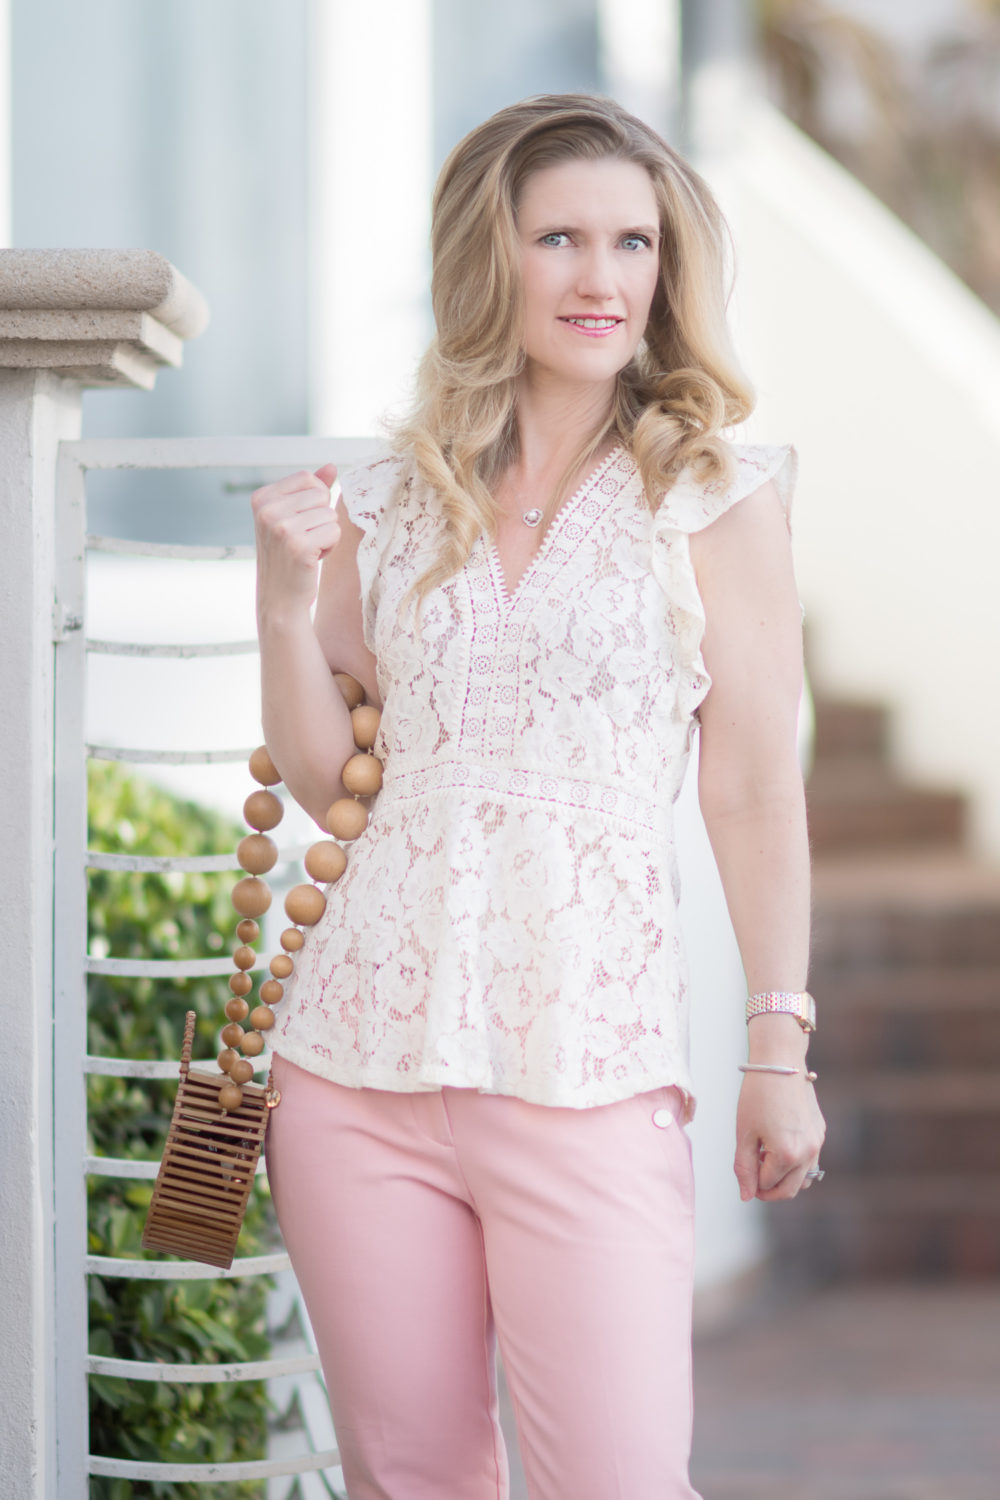 Petite Fashion and Style Blog | Hollywood Beach Travel Guide | Loft Lace Top